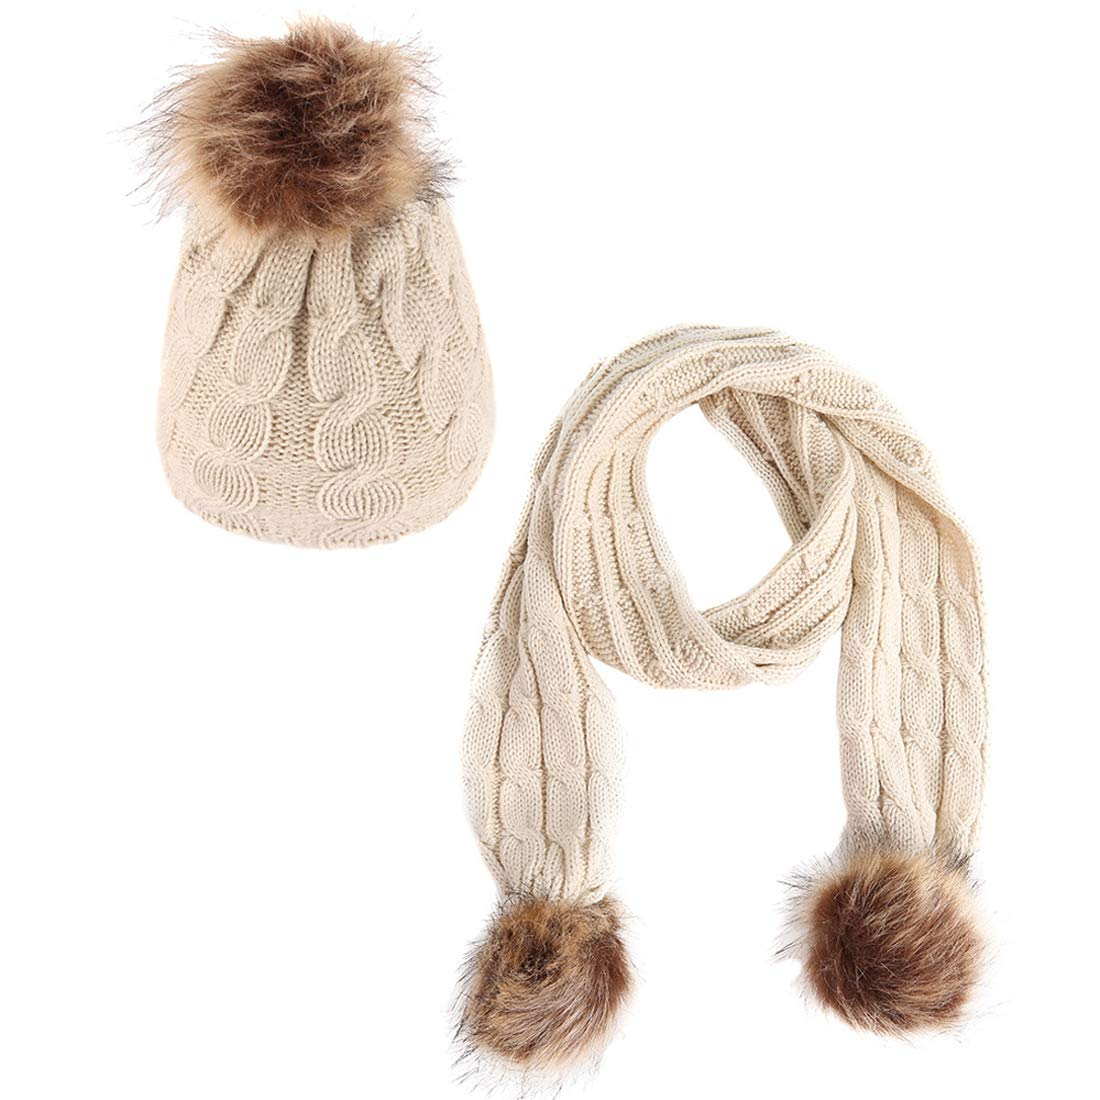 Belsen Winter Kids Warm Knitted Hat and Scarf Set with Faux Fur Pom Pom